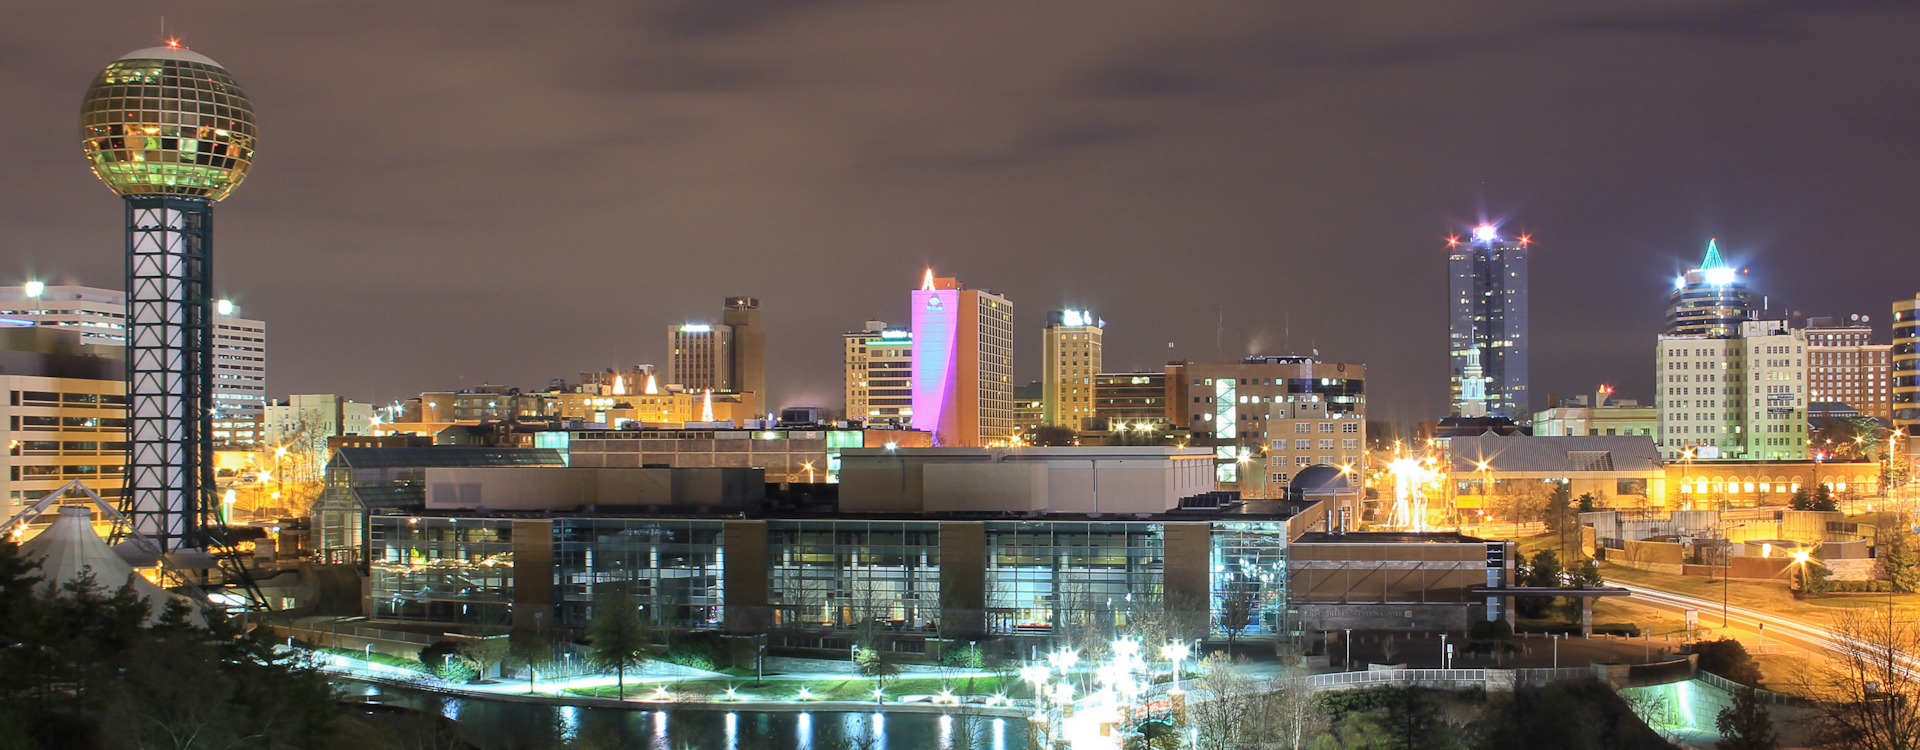 Knoxville Convention Center